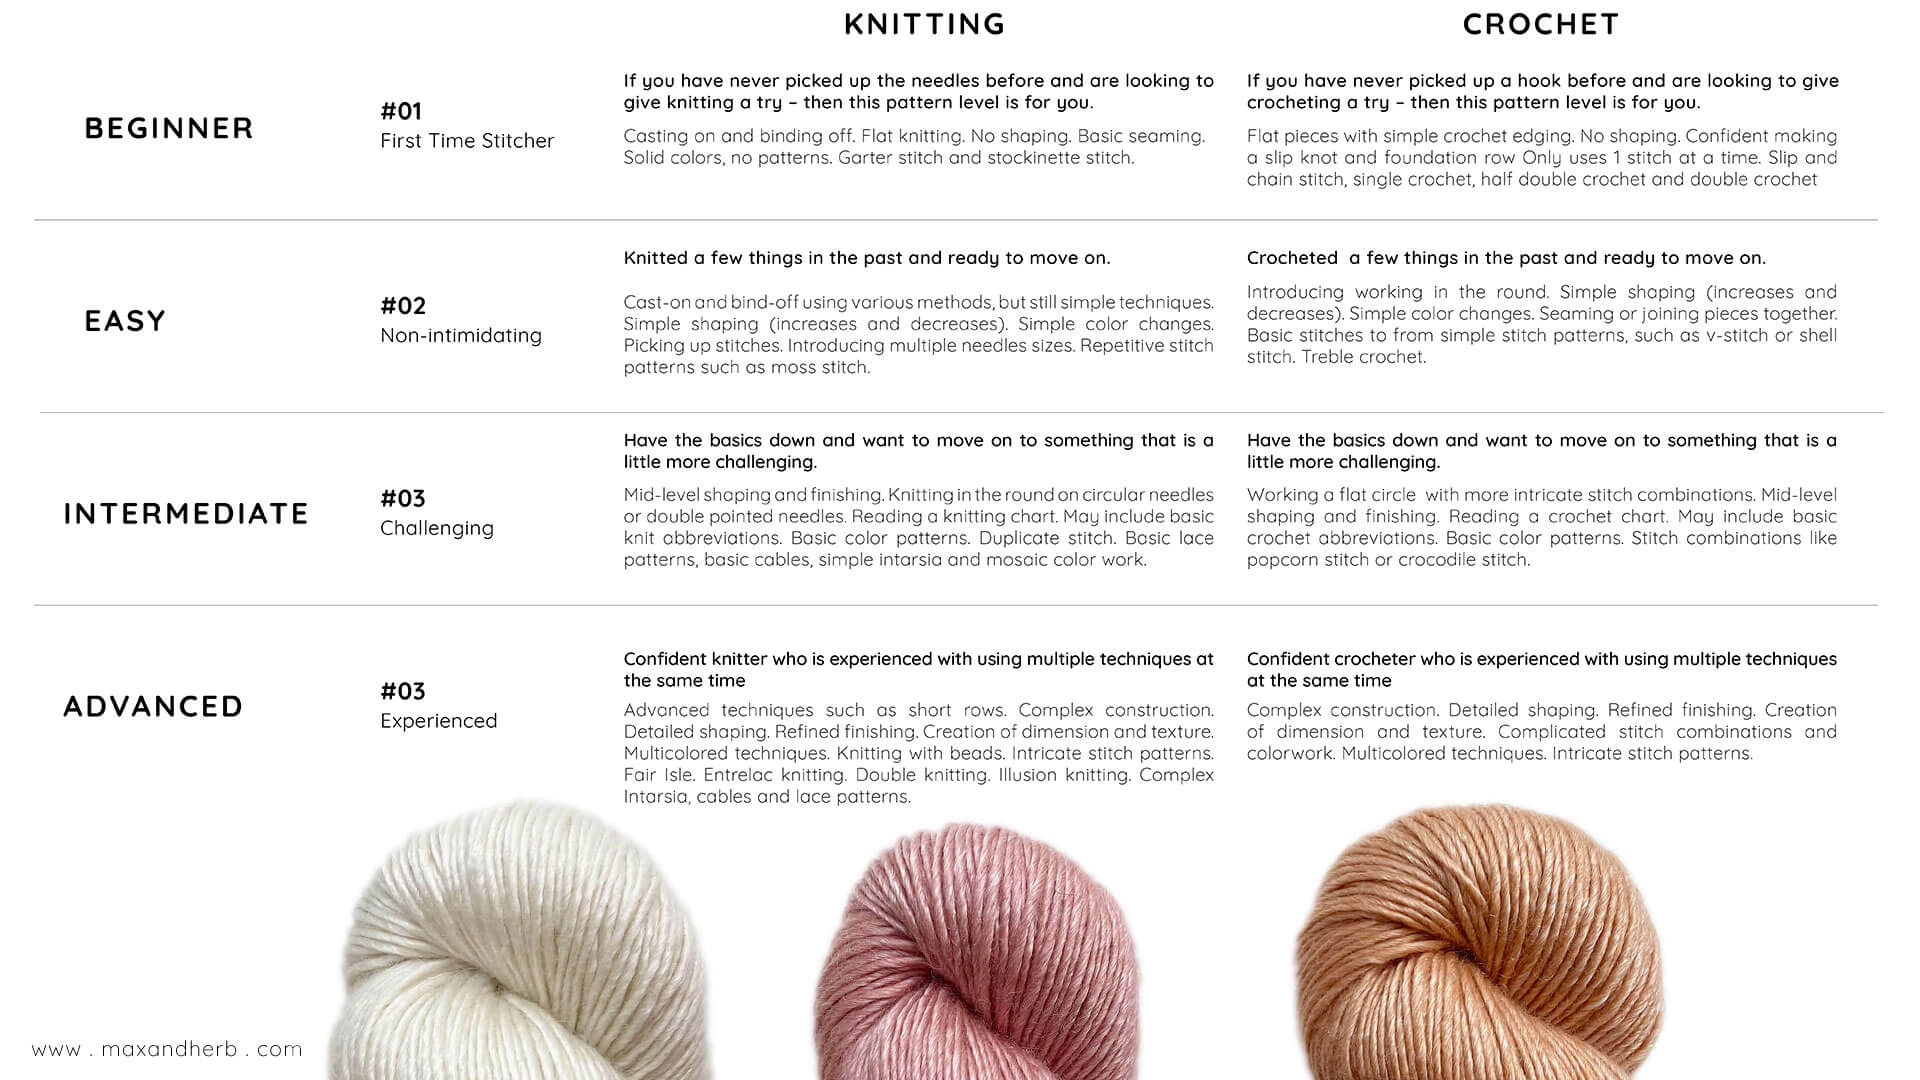 Max and Herb - Knitting and Crochet skill level explained